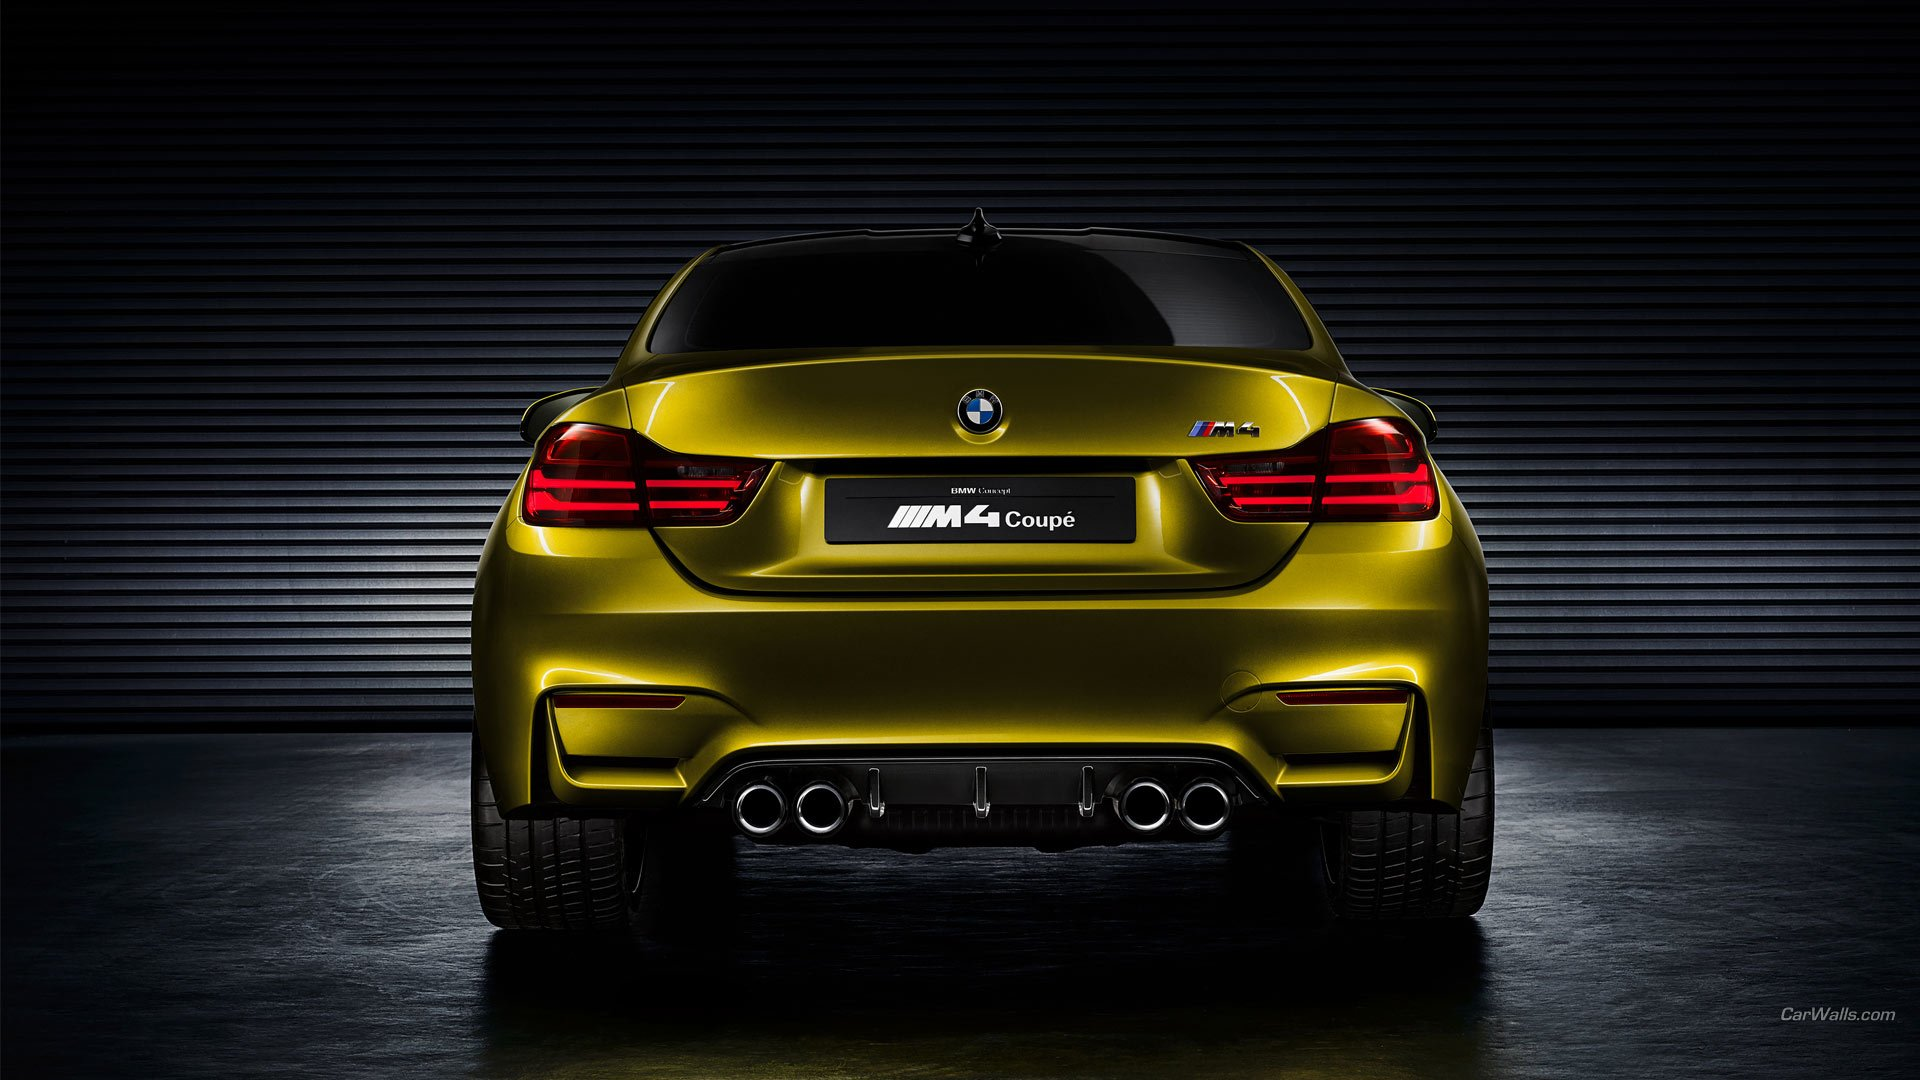 23 Bmw M4 Coupe Hd Wallpapers Background Images Wallpaper Abyss